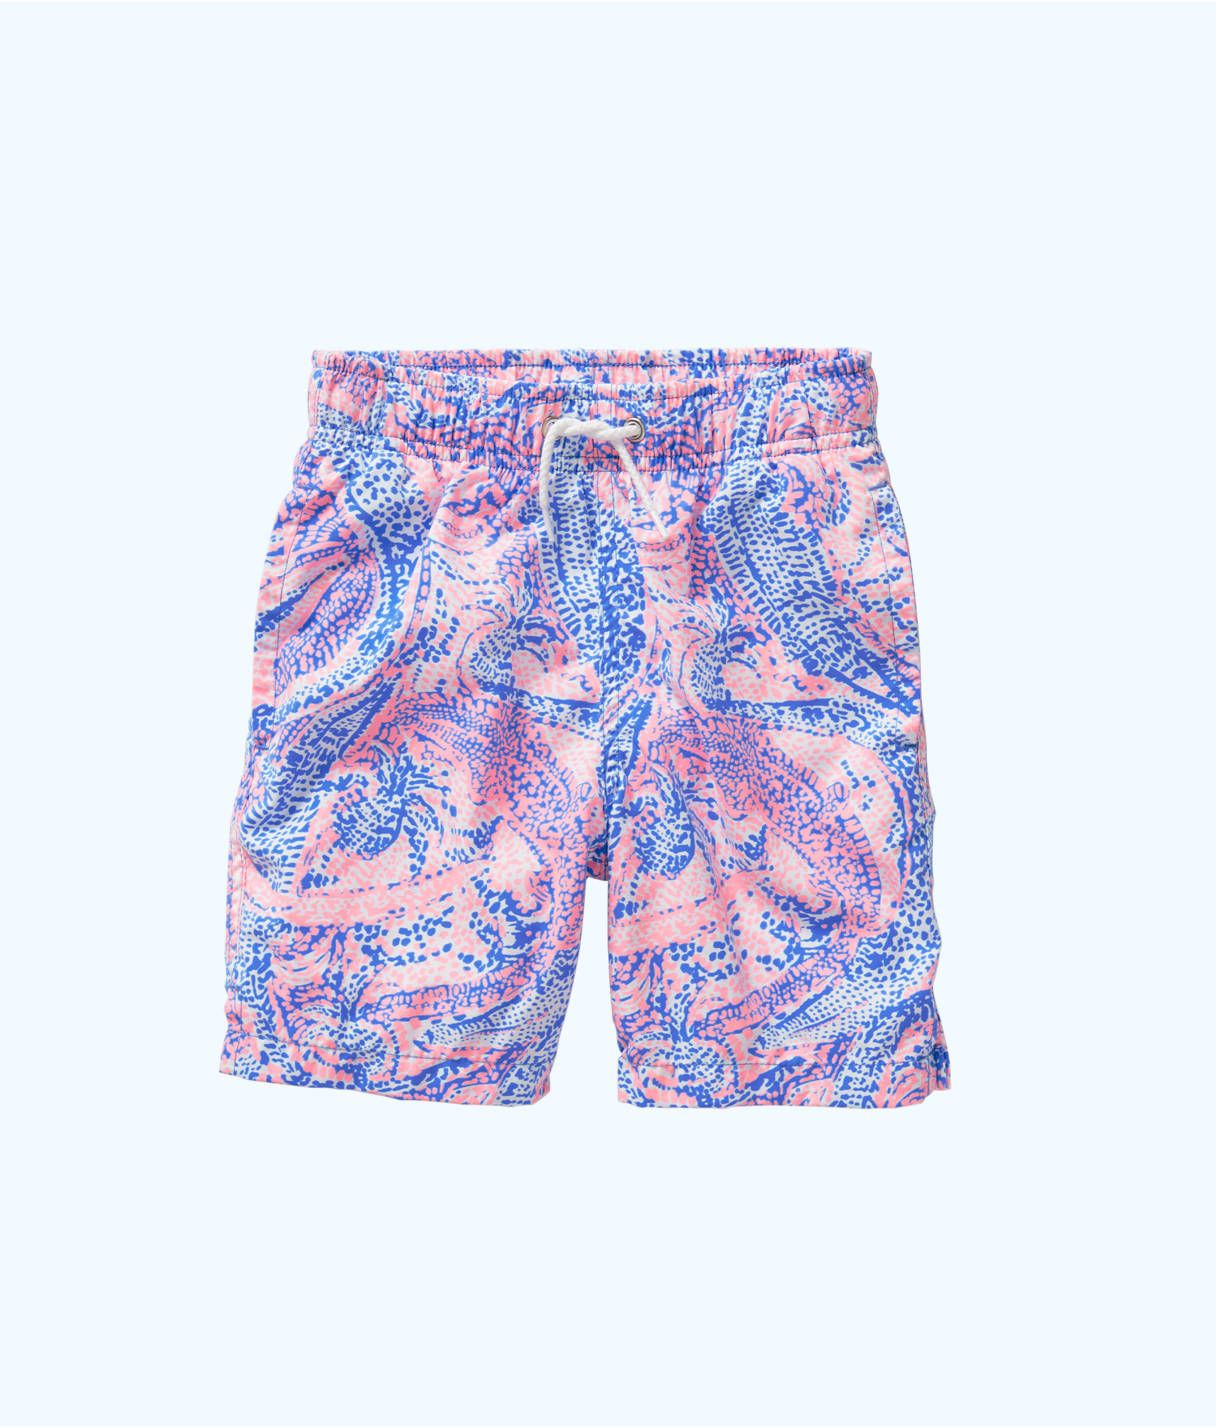 380470ba69 Boys Junior Capri Swim Trunks, , large | To do list in 2019 | Swim ...